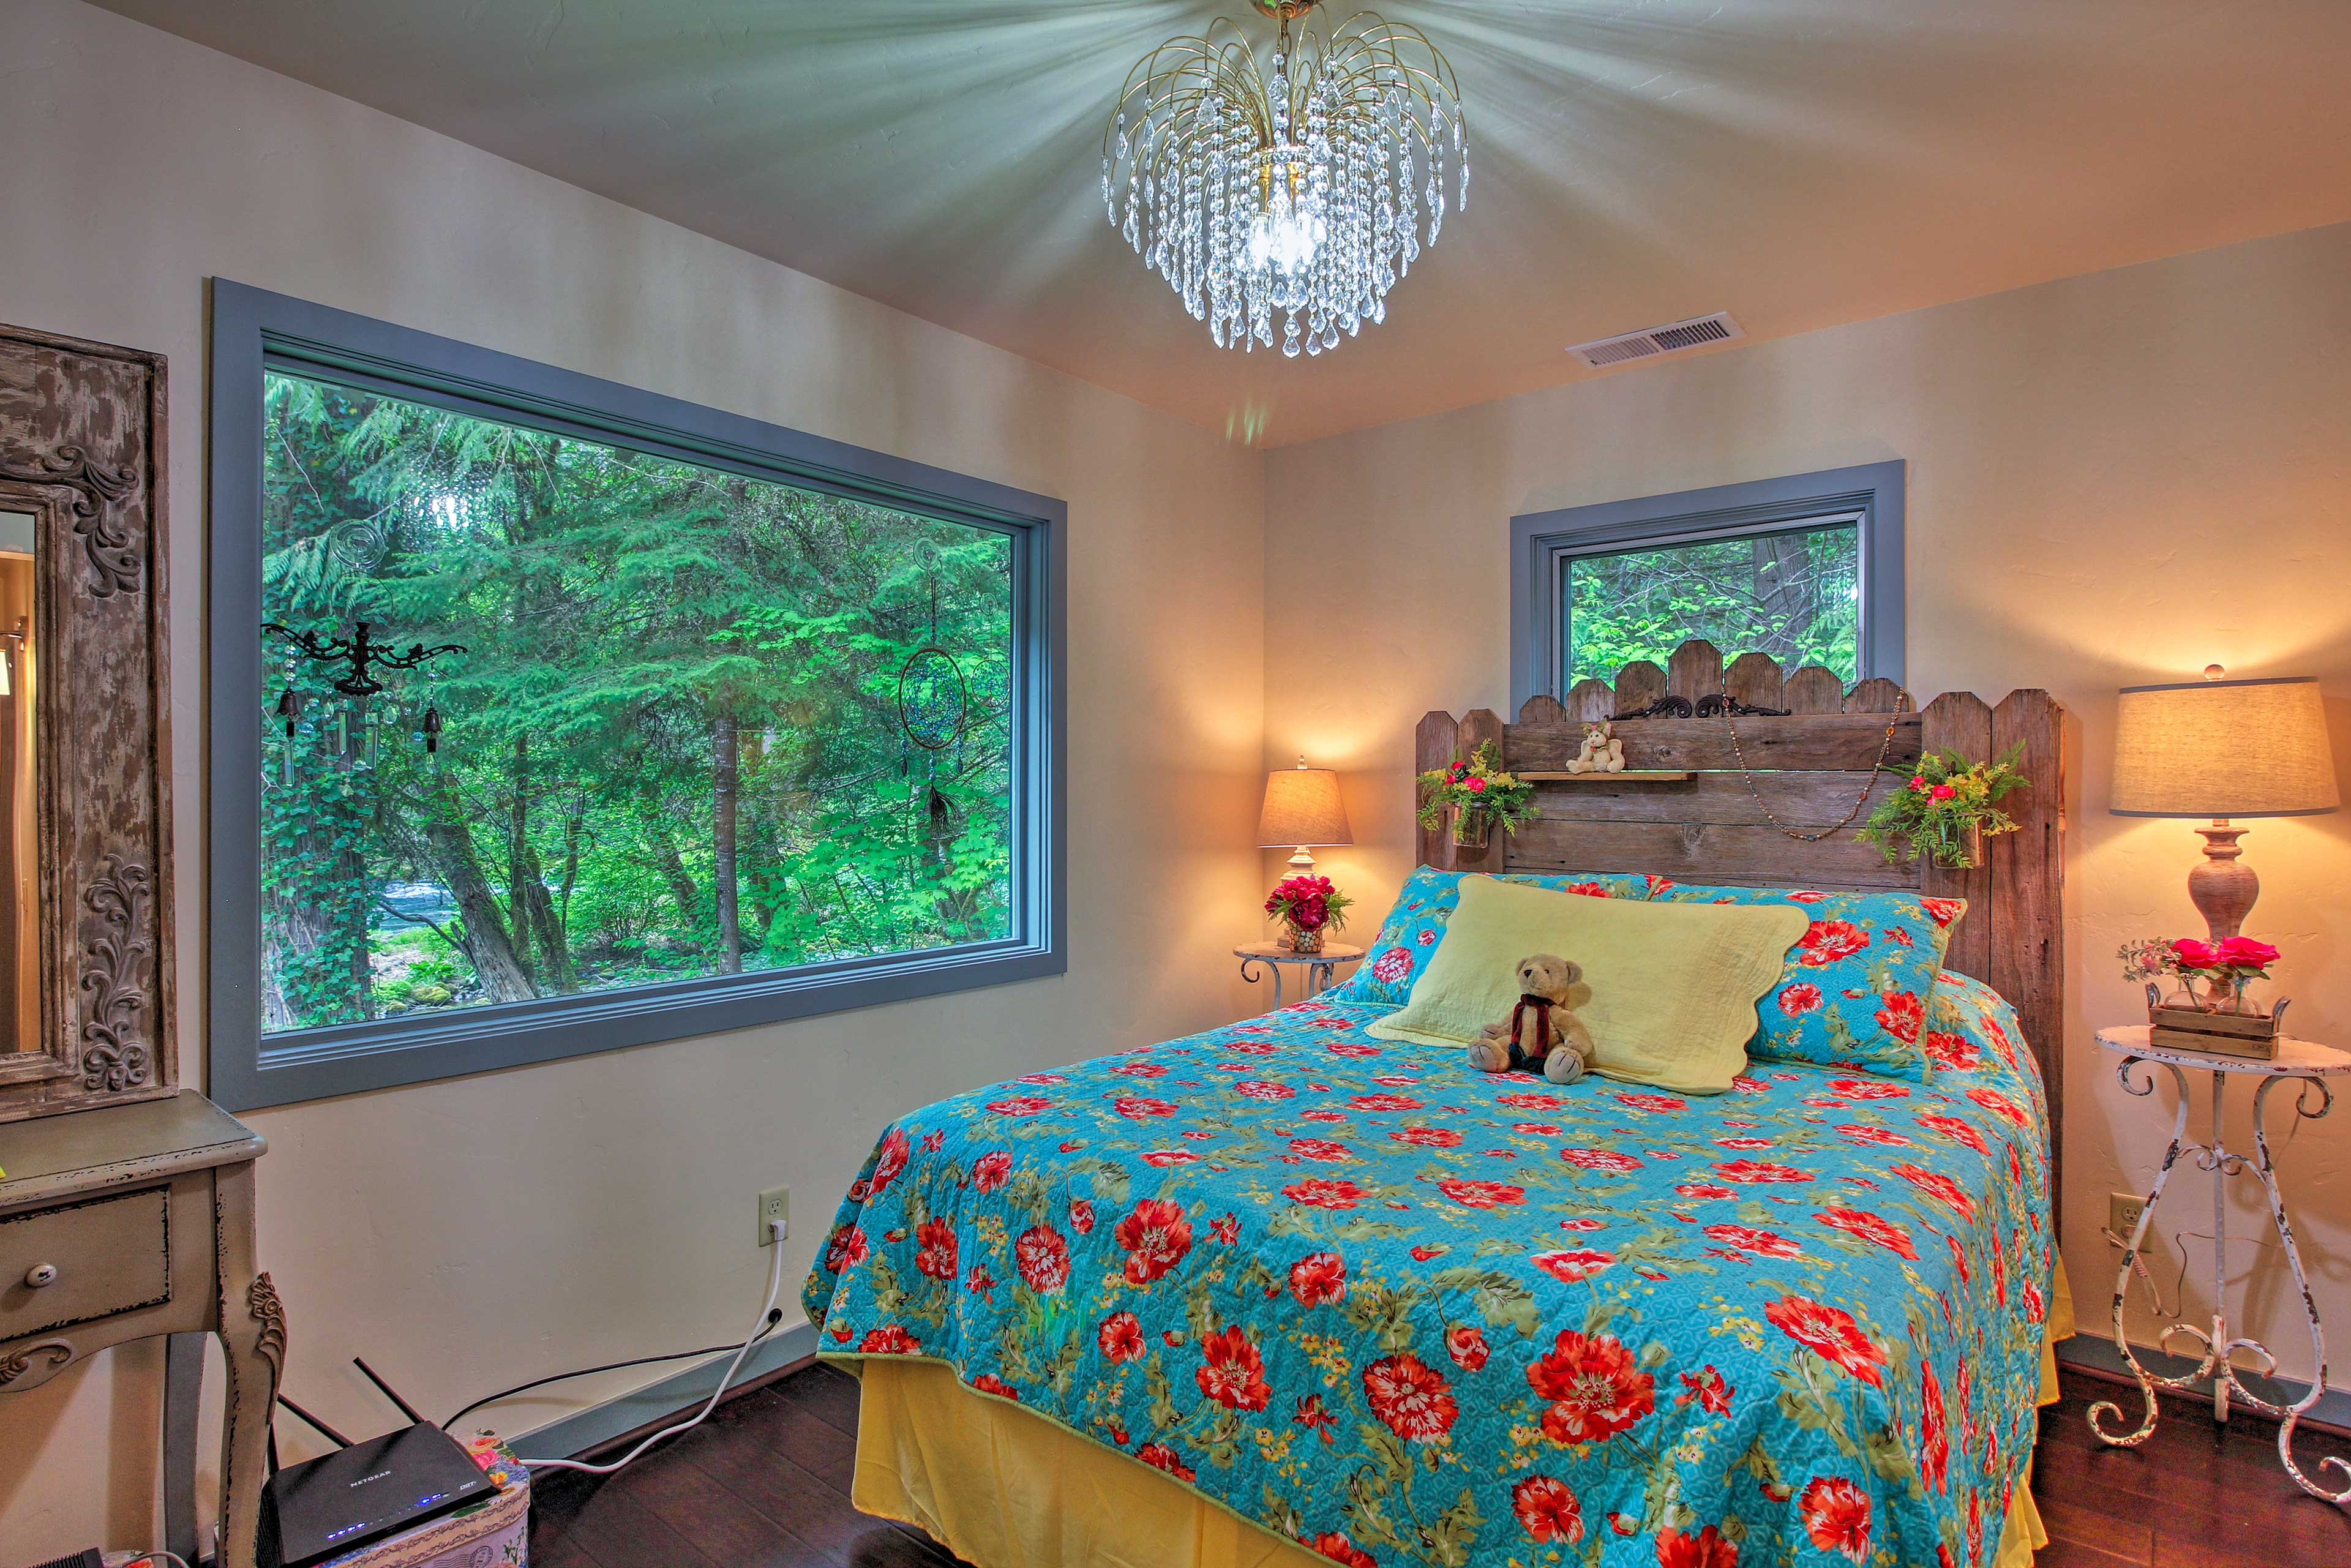 The other bedroom is just as amazing!